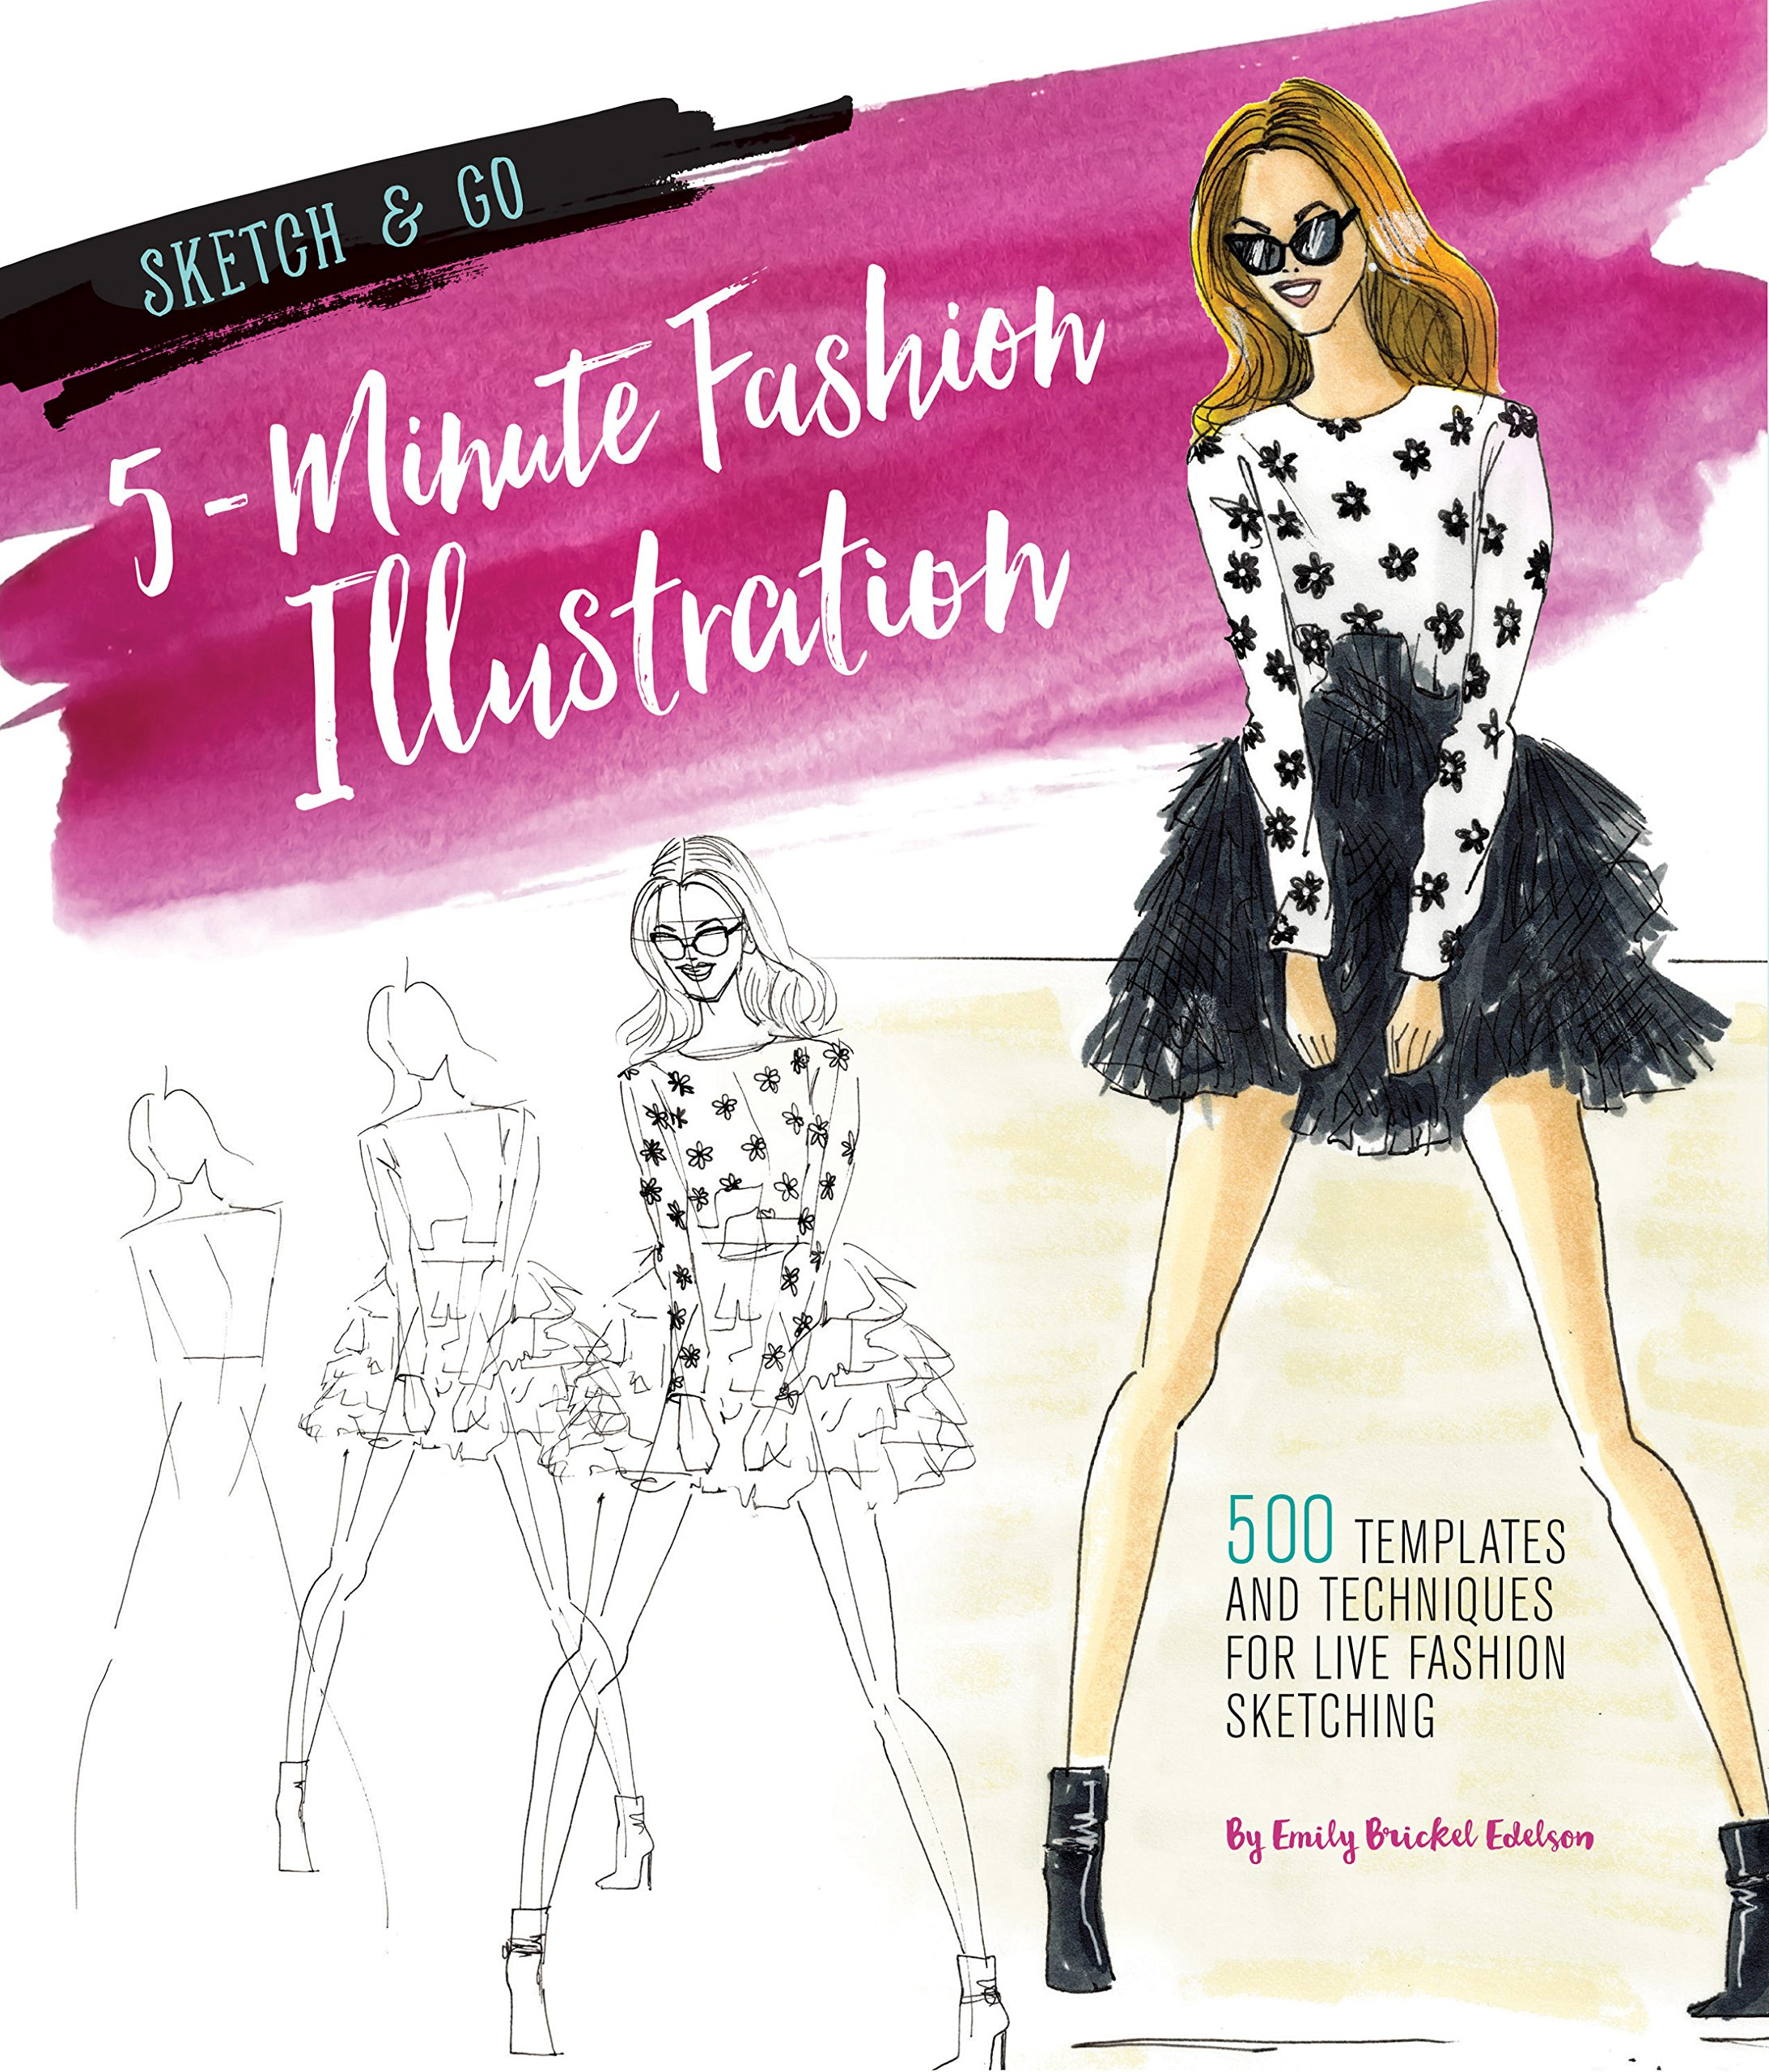 Sketch and Go 5,Minute Fashion Illustration , 500 Model